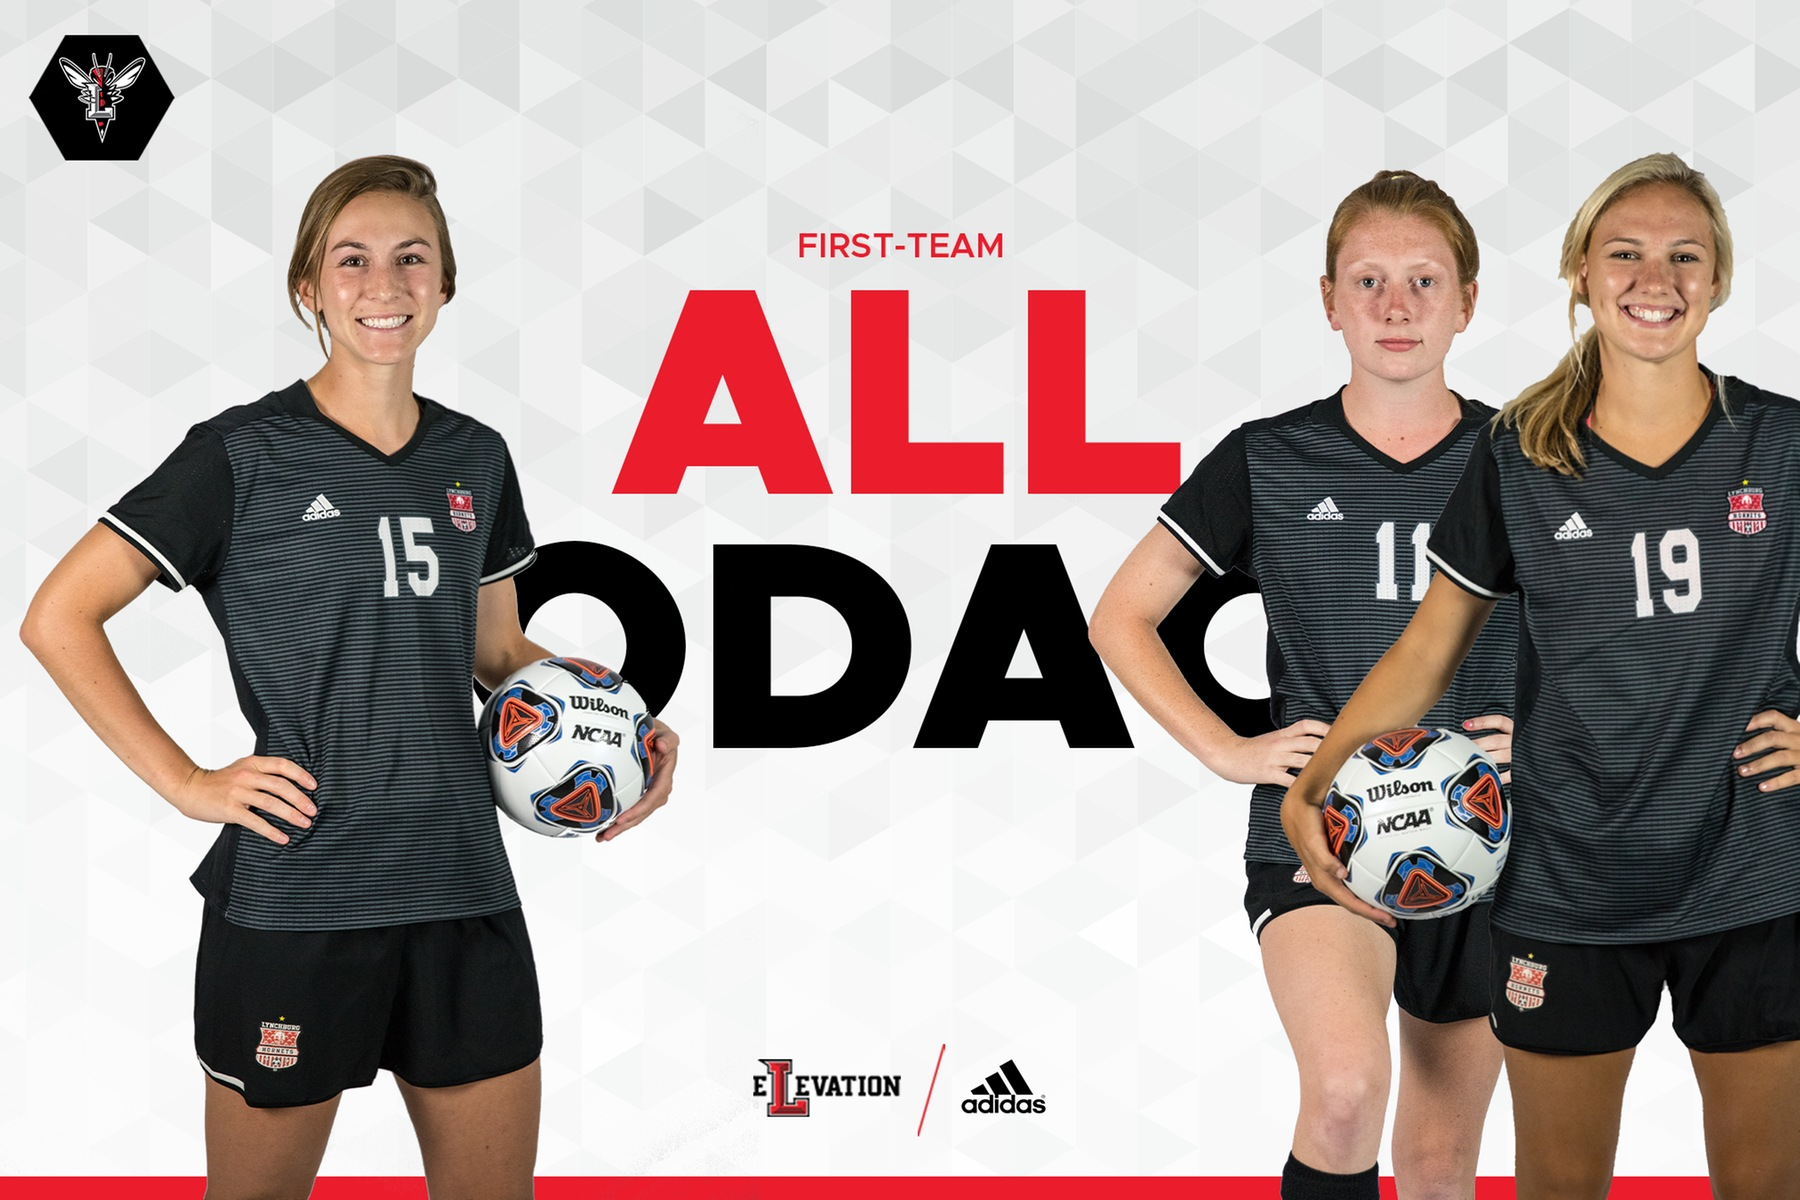 Cutout images of all-confernece women's soccer players dressed in black on white background. Text in red: First-team all-ODAC